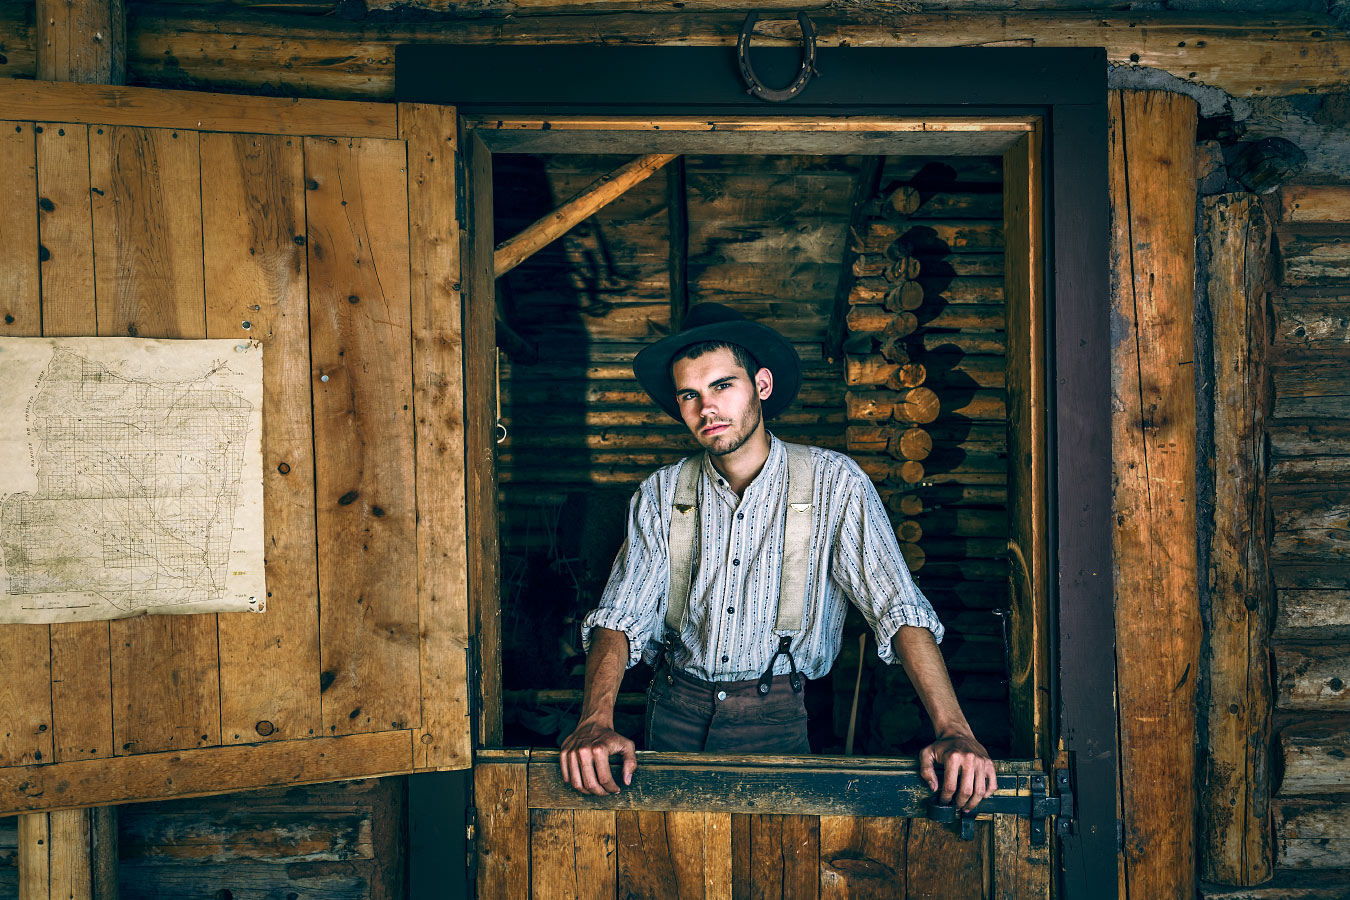 Andrew Horner Rancher Crooked Creek Philmont Scout Ranch Cimarron New Mexico